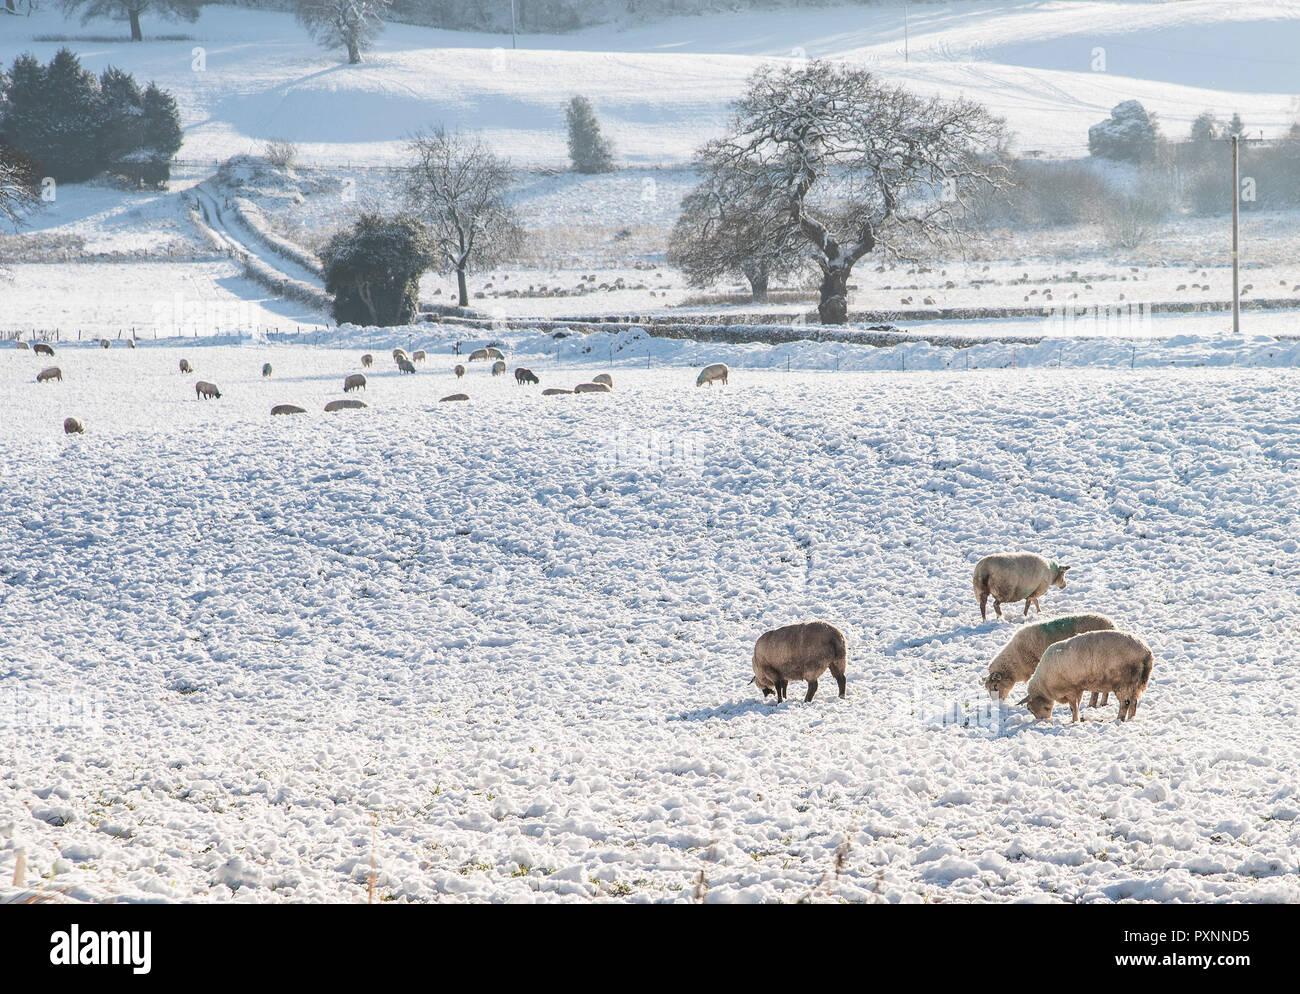 Sheep grazing on a snow covered field in Staffordshire  England  UK. Stock Photo